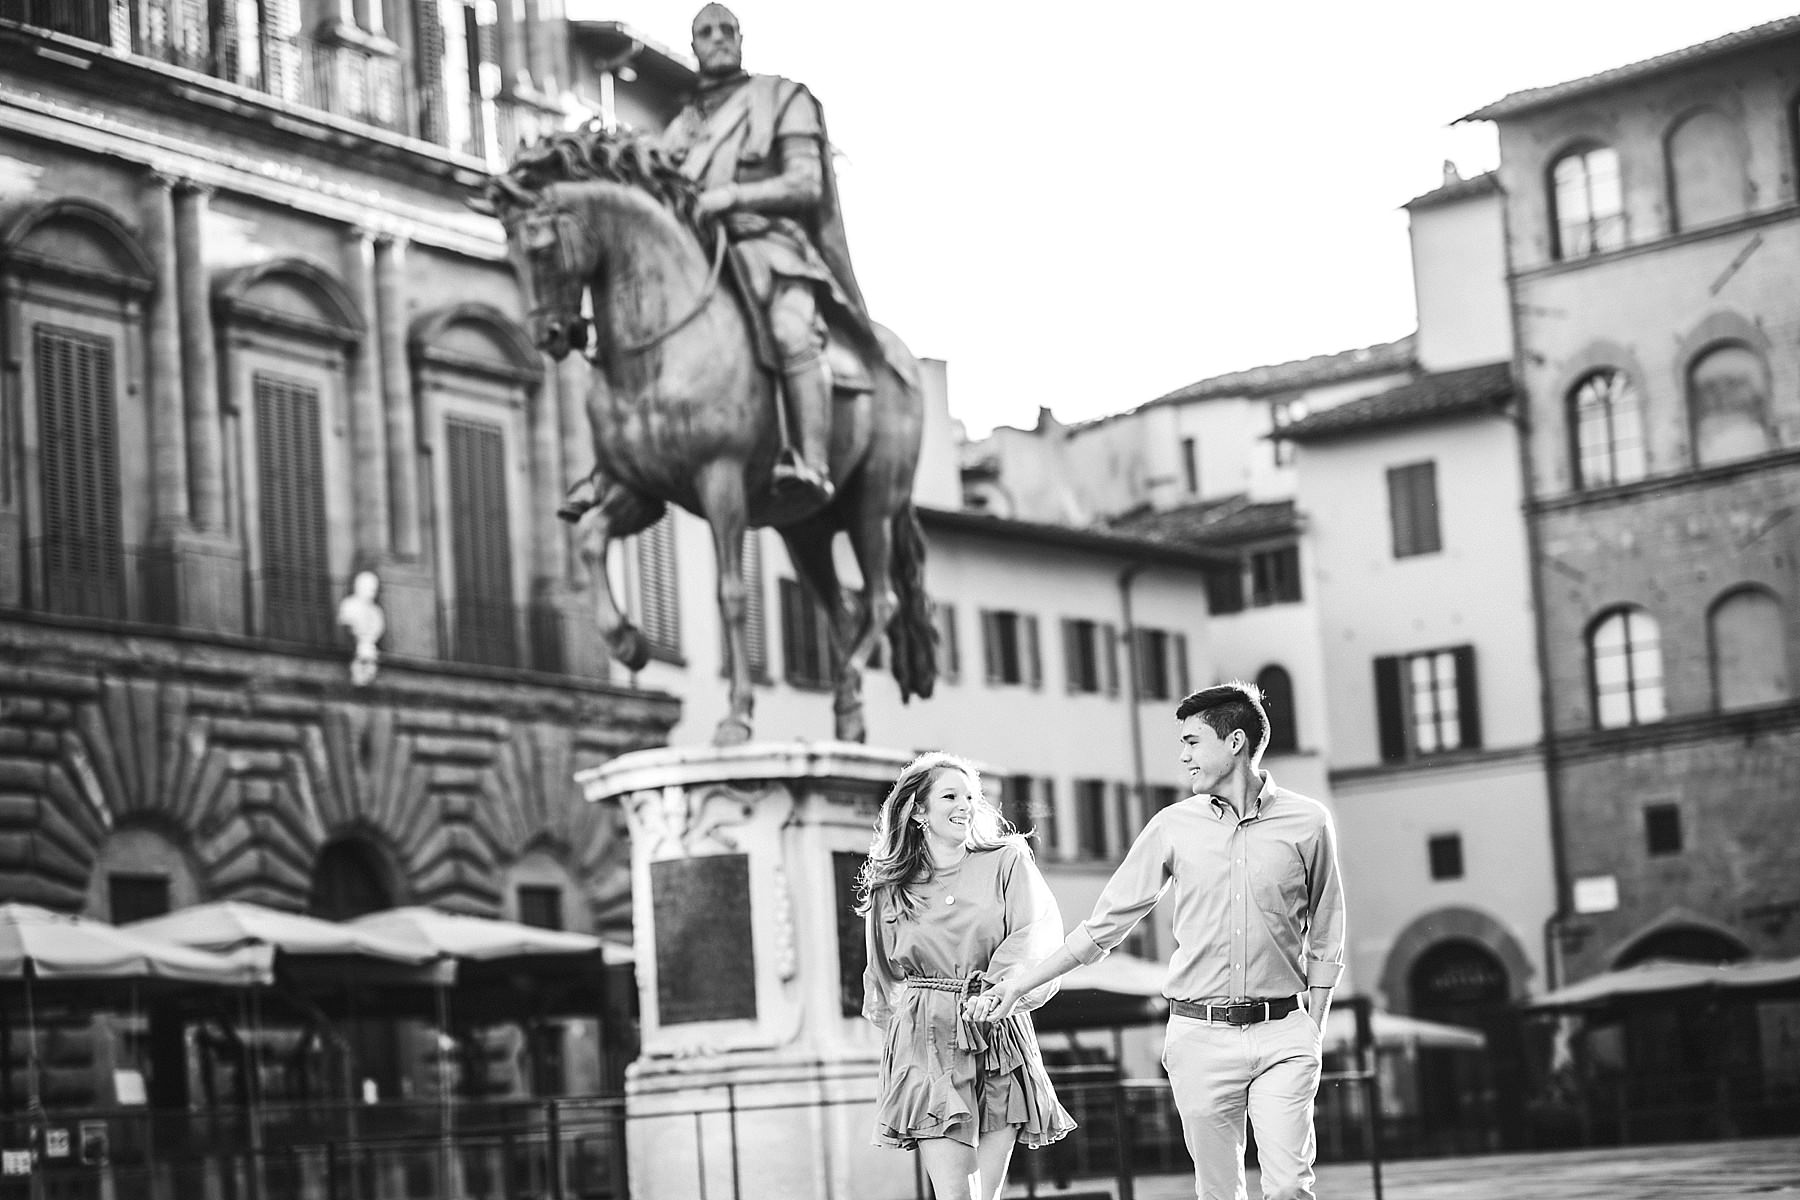 Never too young for exciting vacation photos in Florence. Early morning sunrise engagement photo shoot Piazza della Signoria